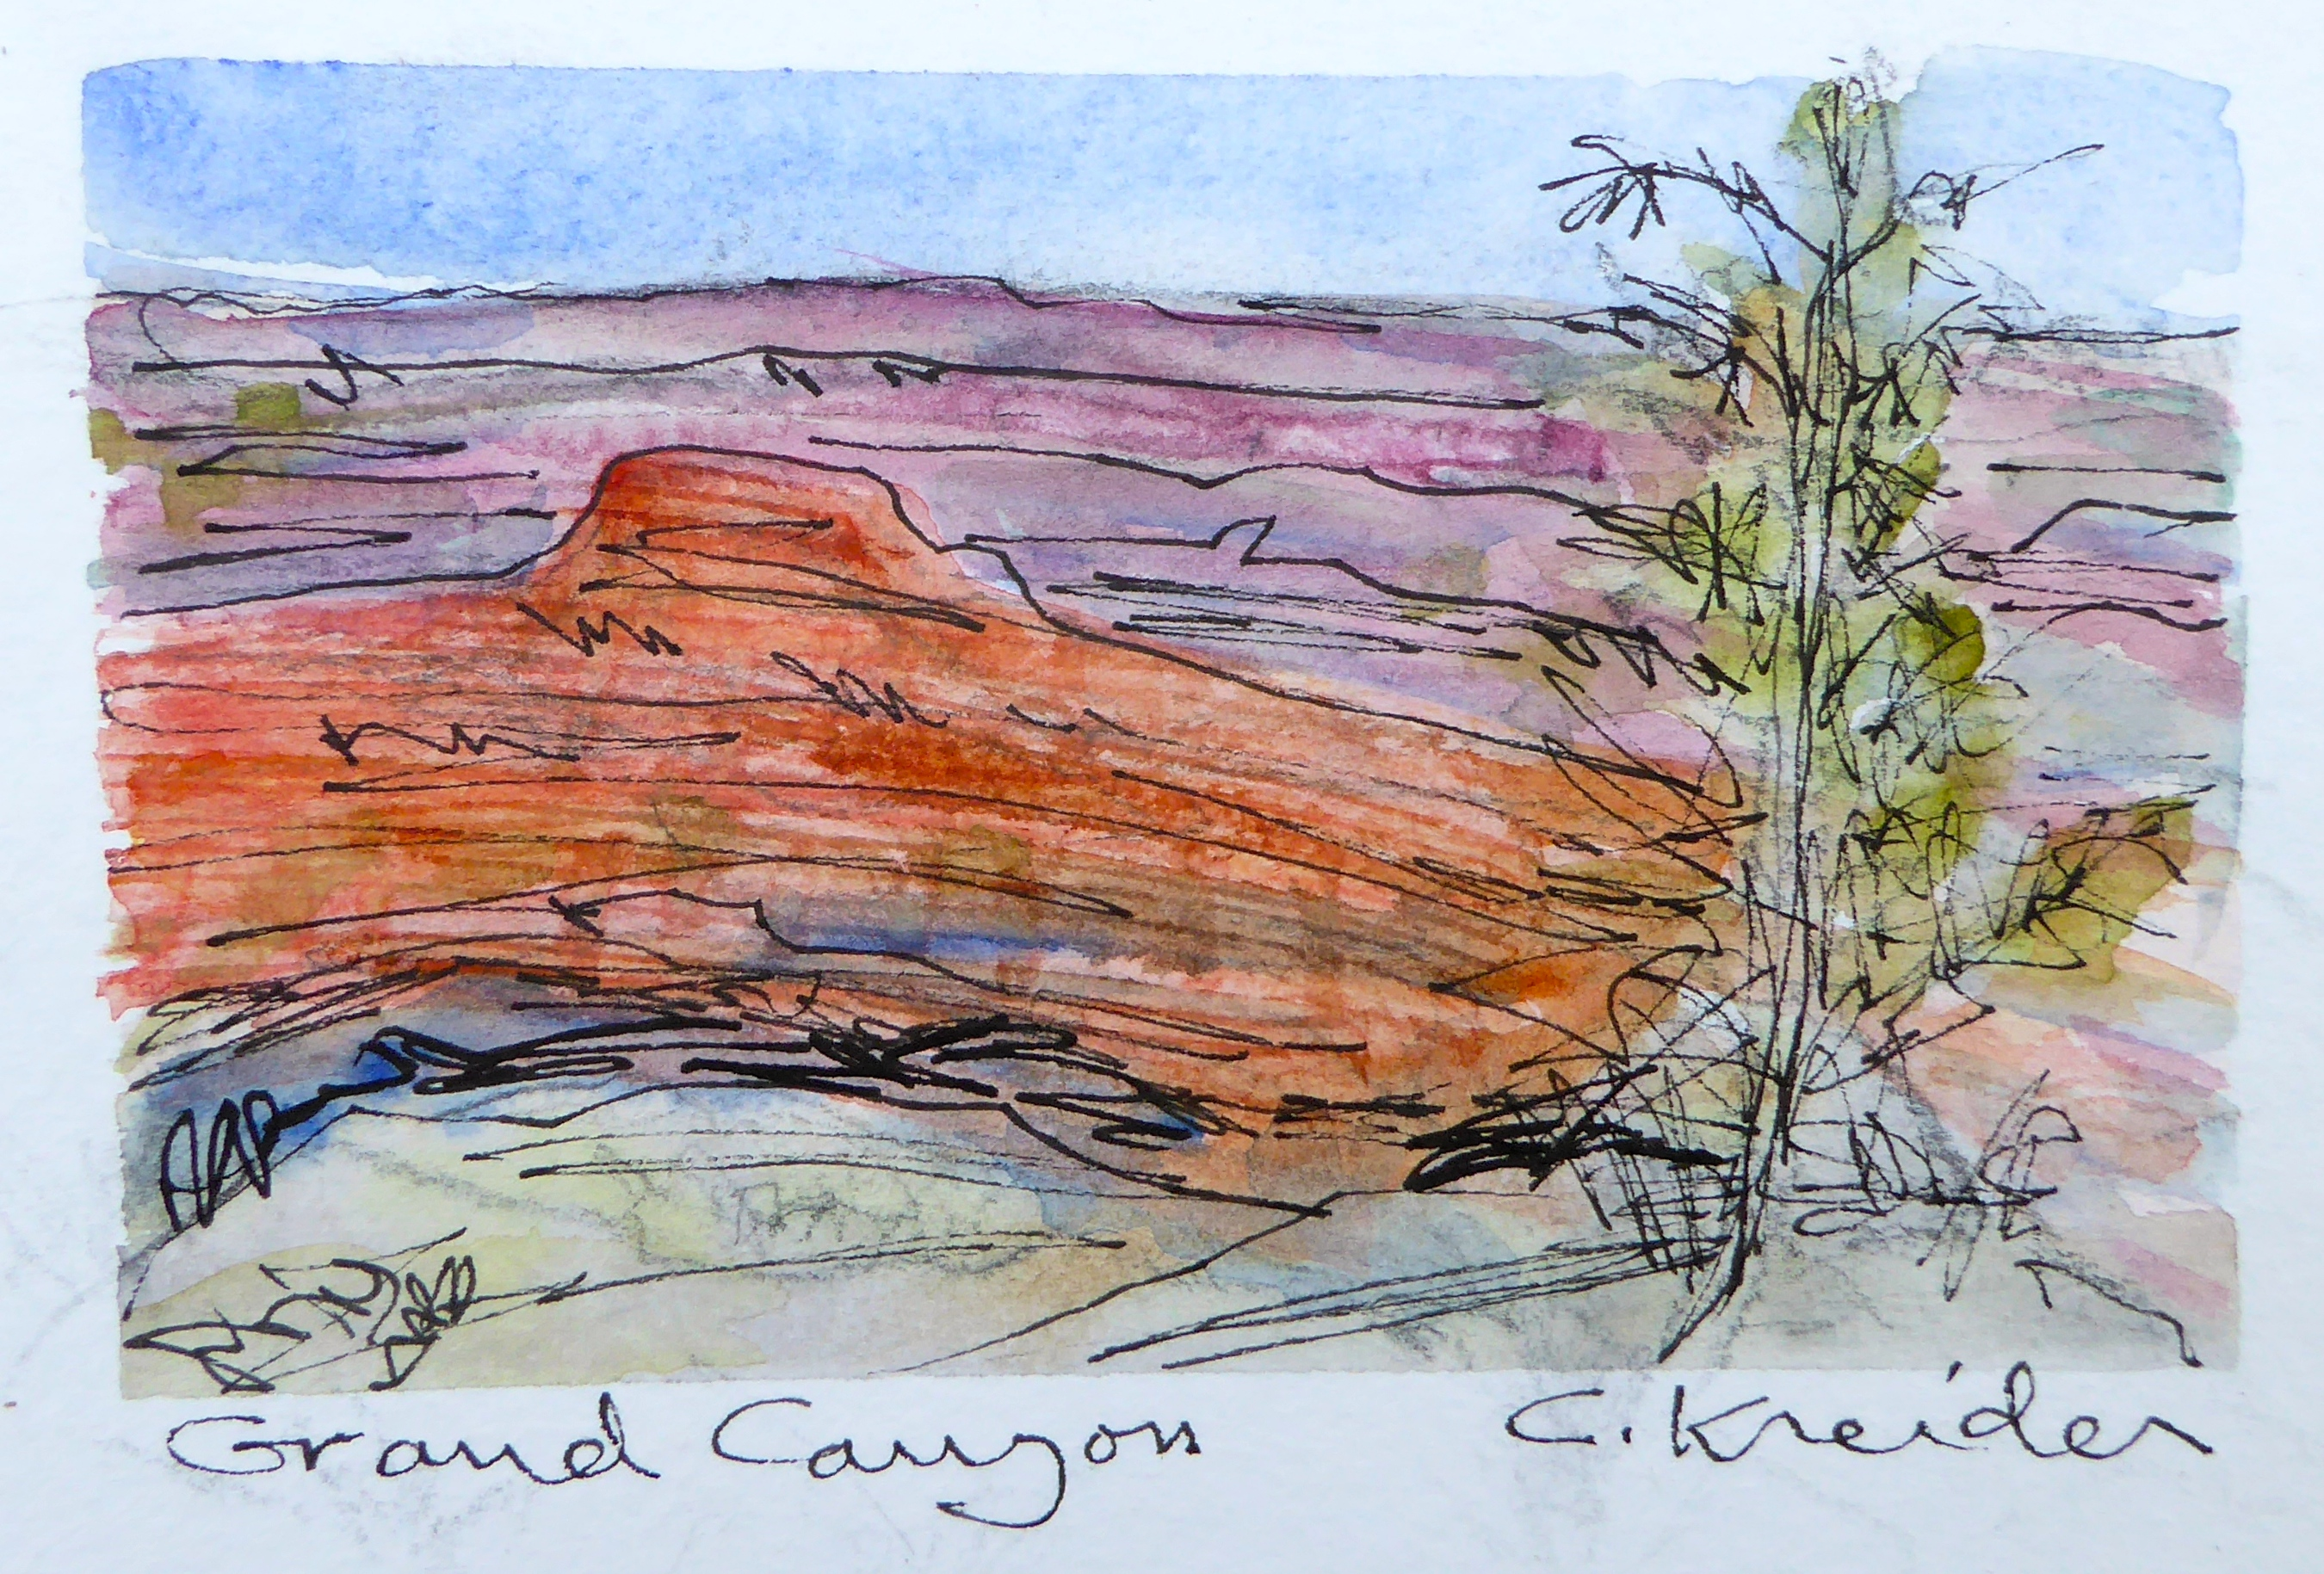 GRAND CANYON: Drawing on the Edge | Have Van Will Travel